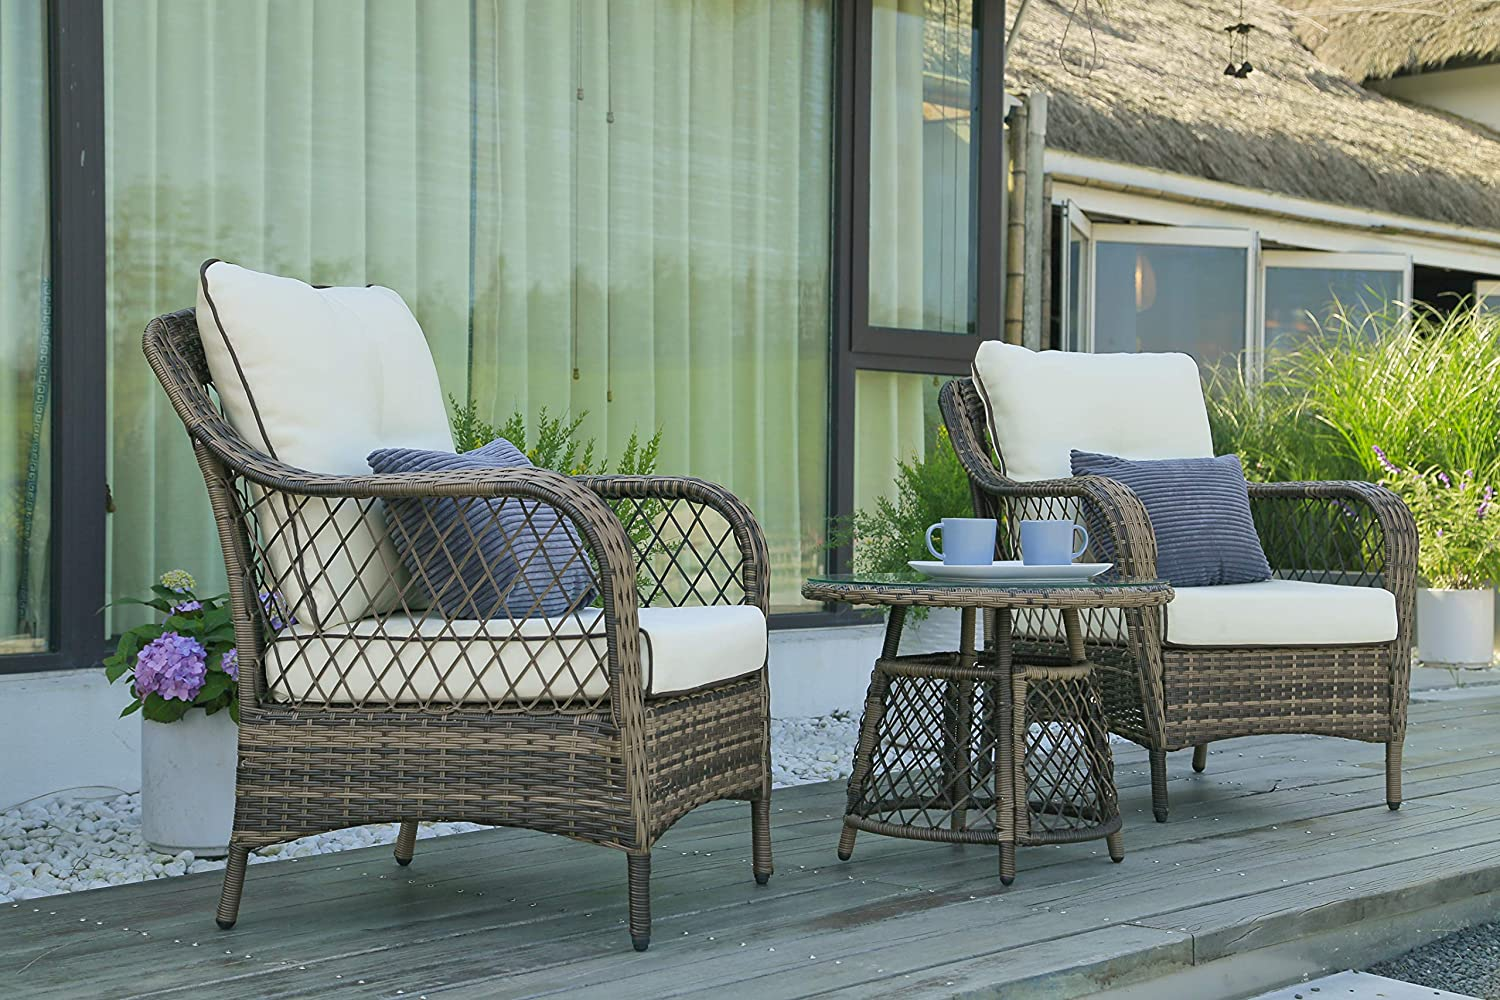 N&V Patio Outdoor Furniture Bistro Sets Mouldproof Wicker Chairs with Glass Coffee Table Pillows & Waterproof Cushions for Outdoor or Indoor Use Porch Backyard Garden 3 Pieces